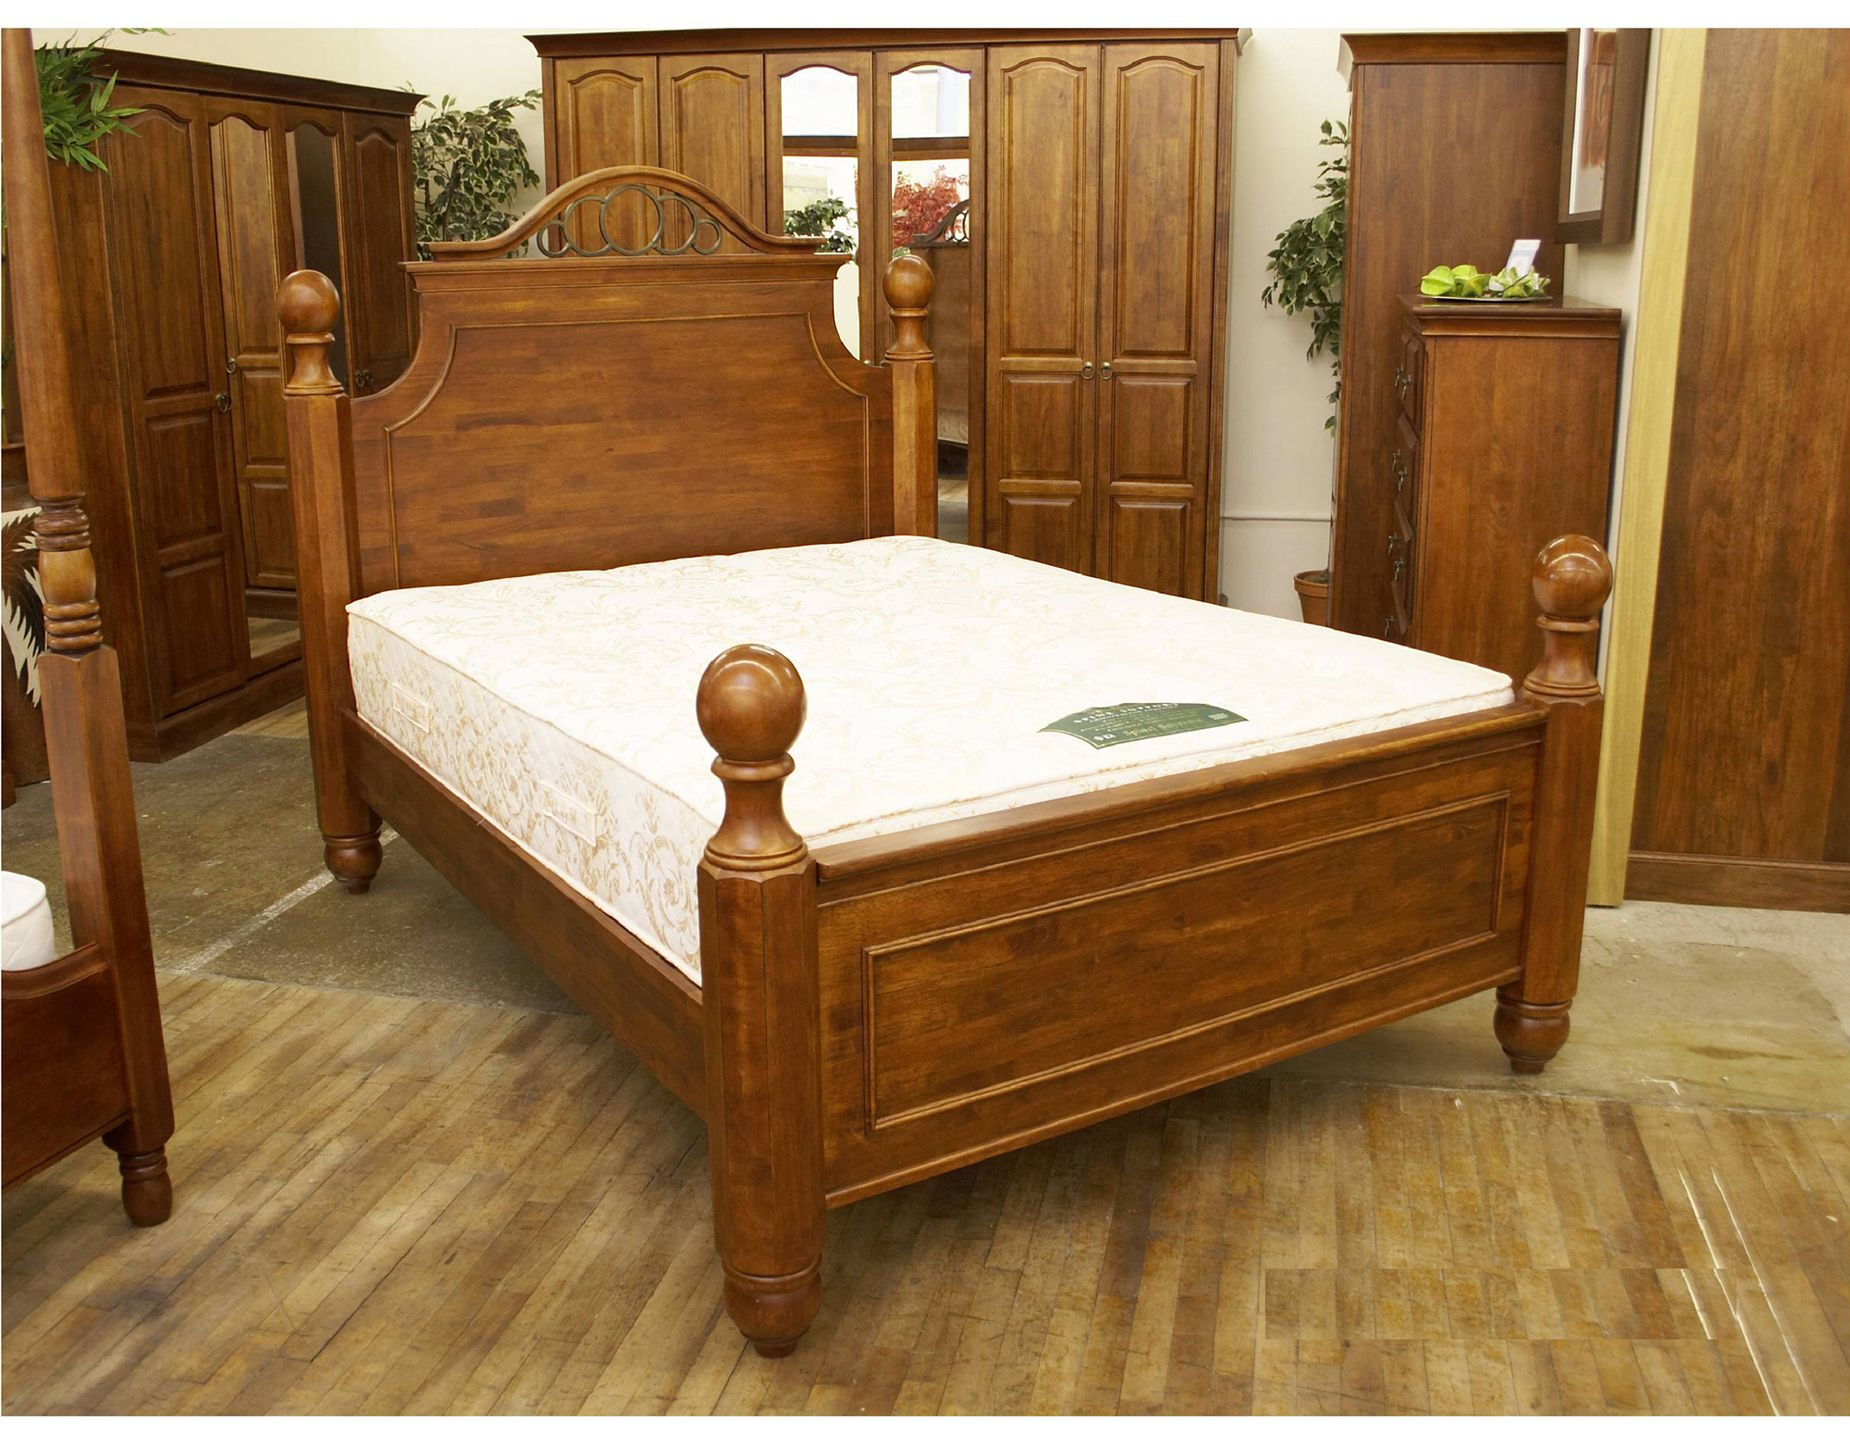 Oak Bedroom Furniture collection is handcrafted from